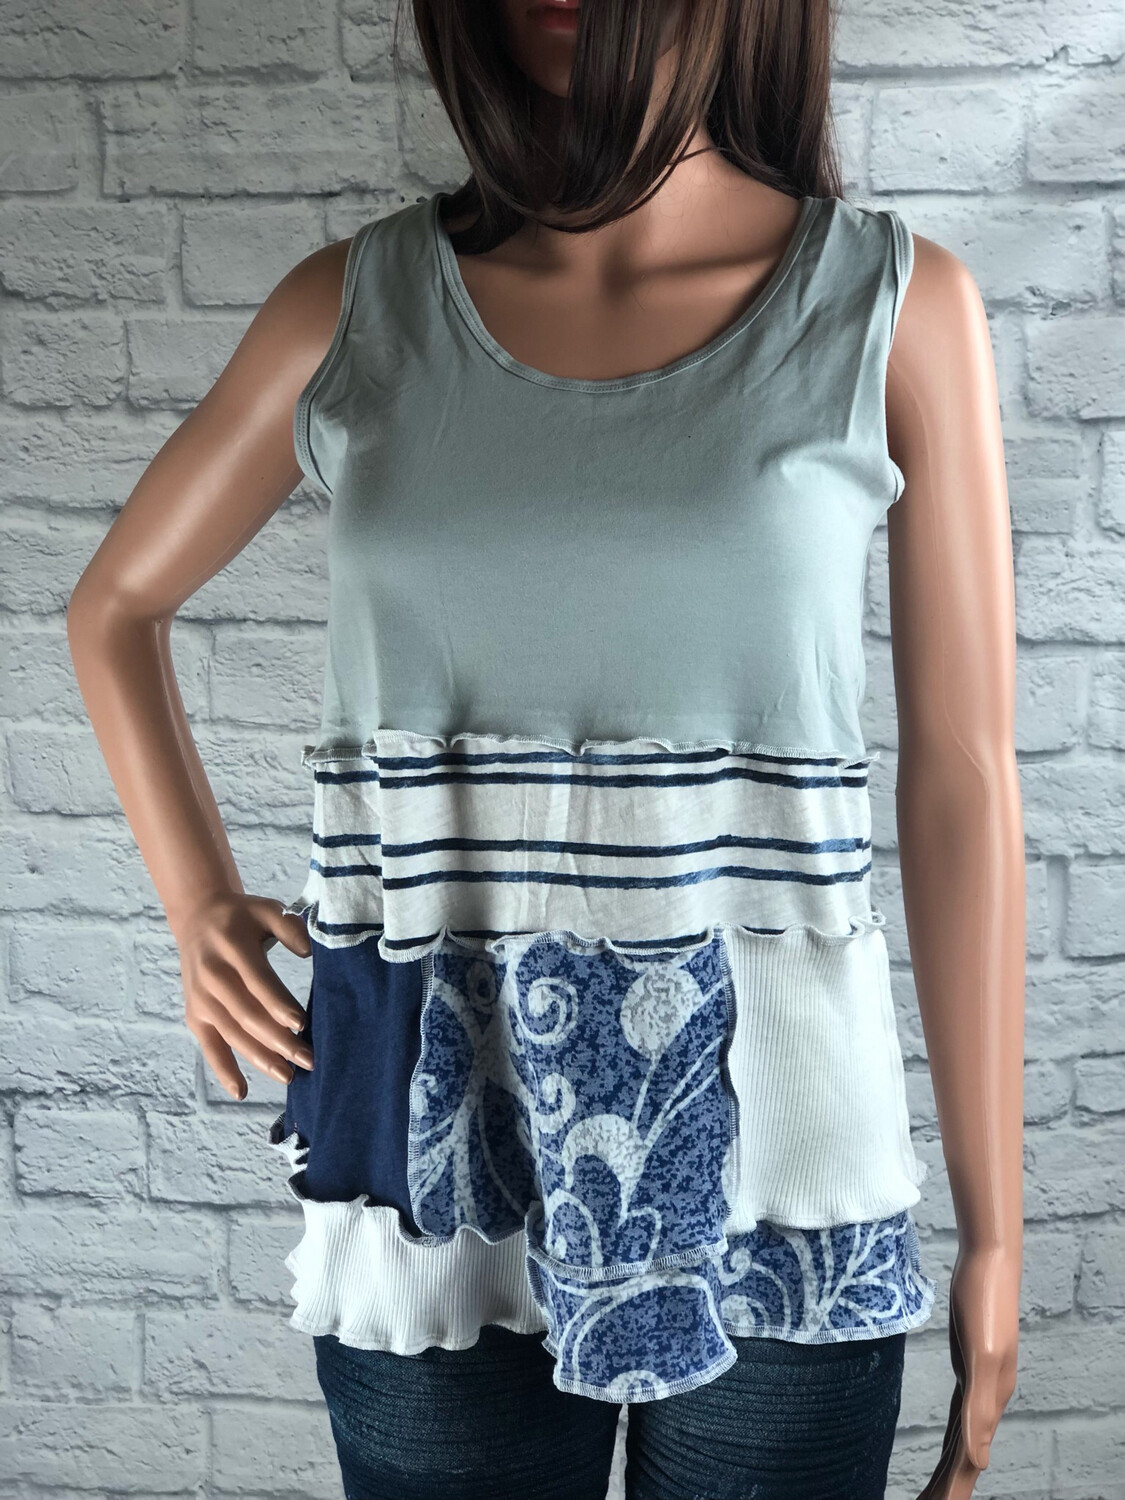 S Threads Upcycled Tank Racer Back Stripes Solids Florals Size M/L